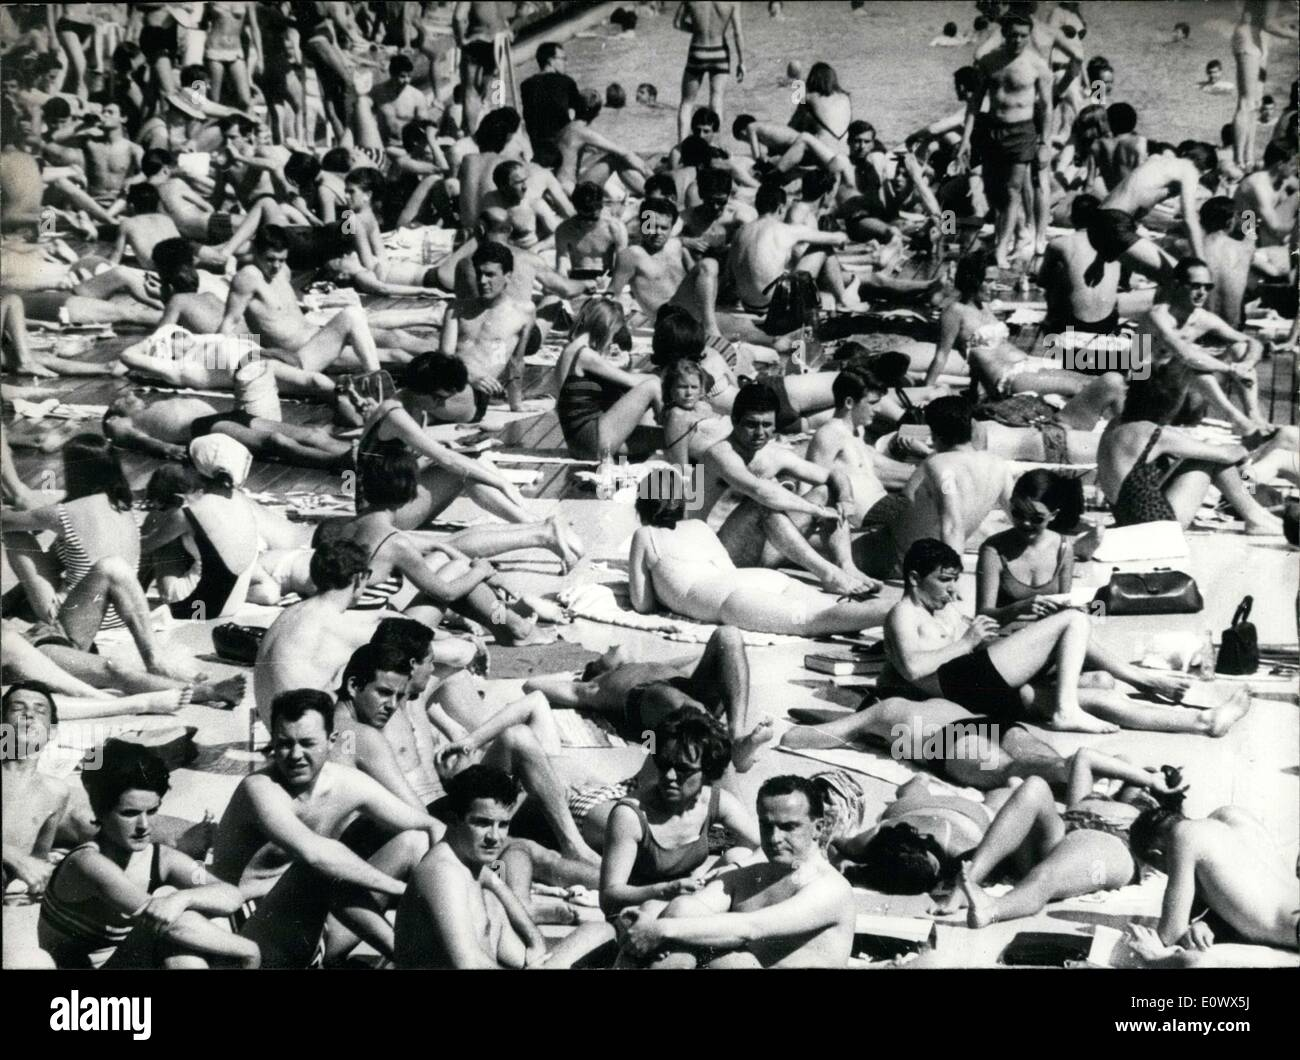 May 17, 1964 - People at the Pool in Paris - Stock Image